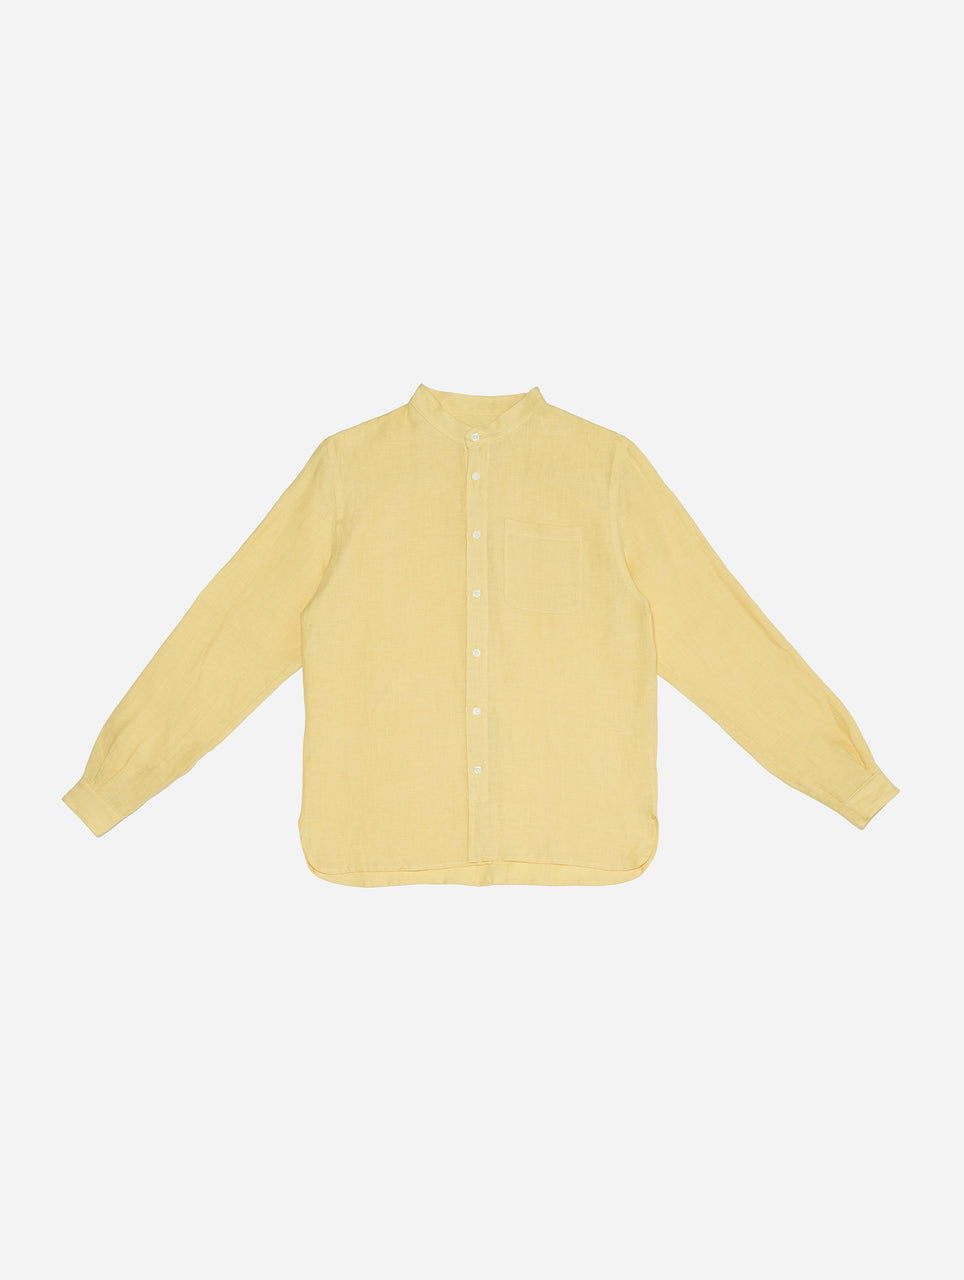 Monk Shirt in Lemon Linen